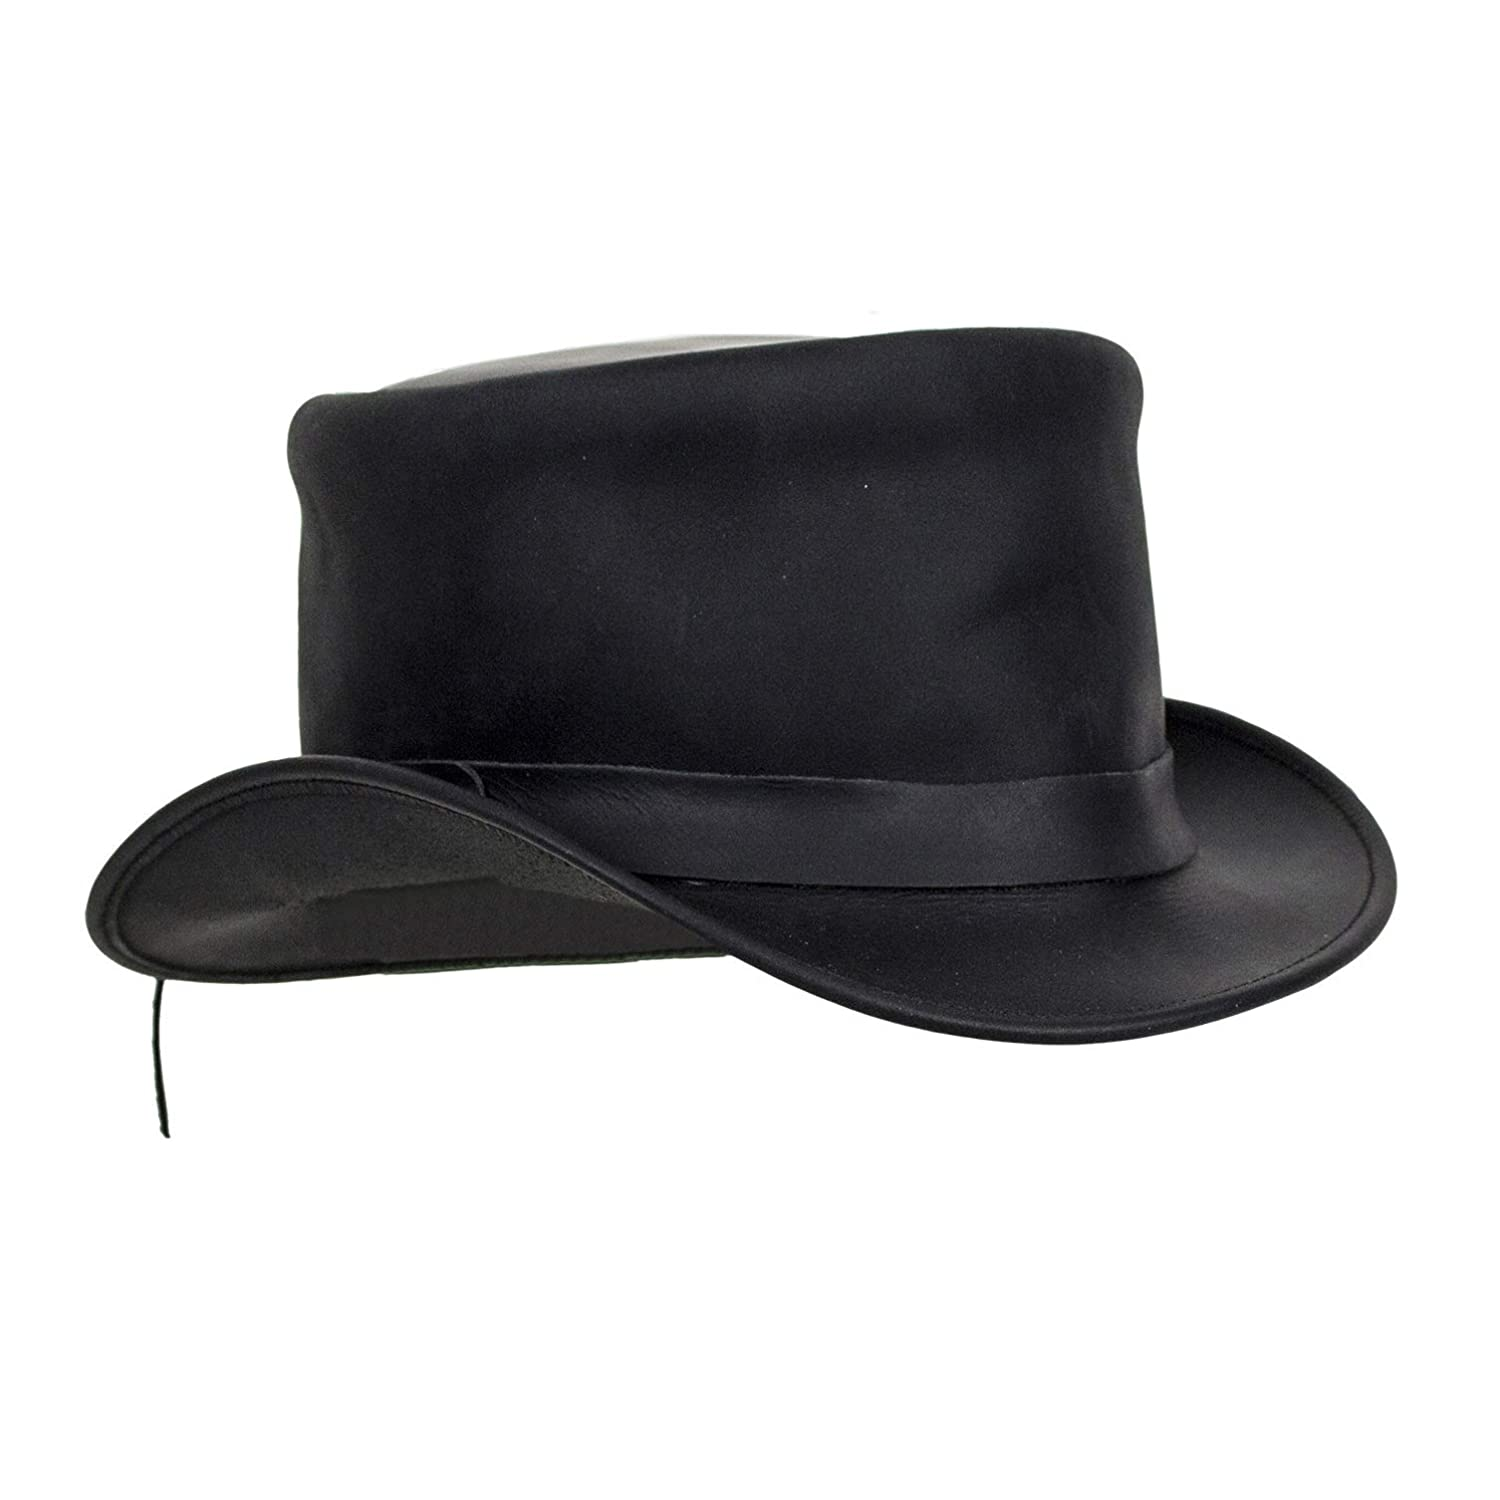 Steampunk Hats | Top Hats | Bowler Black Leather Deadman Top Hat $69.00 AT vintagedancer.com